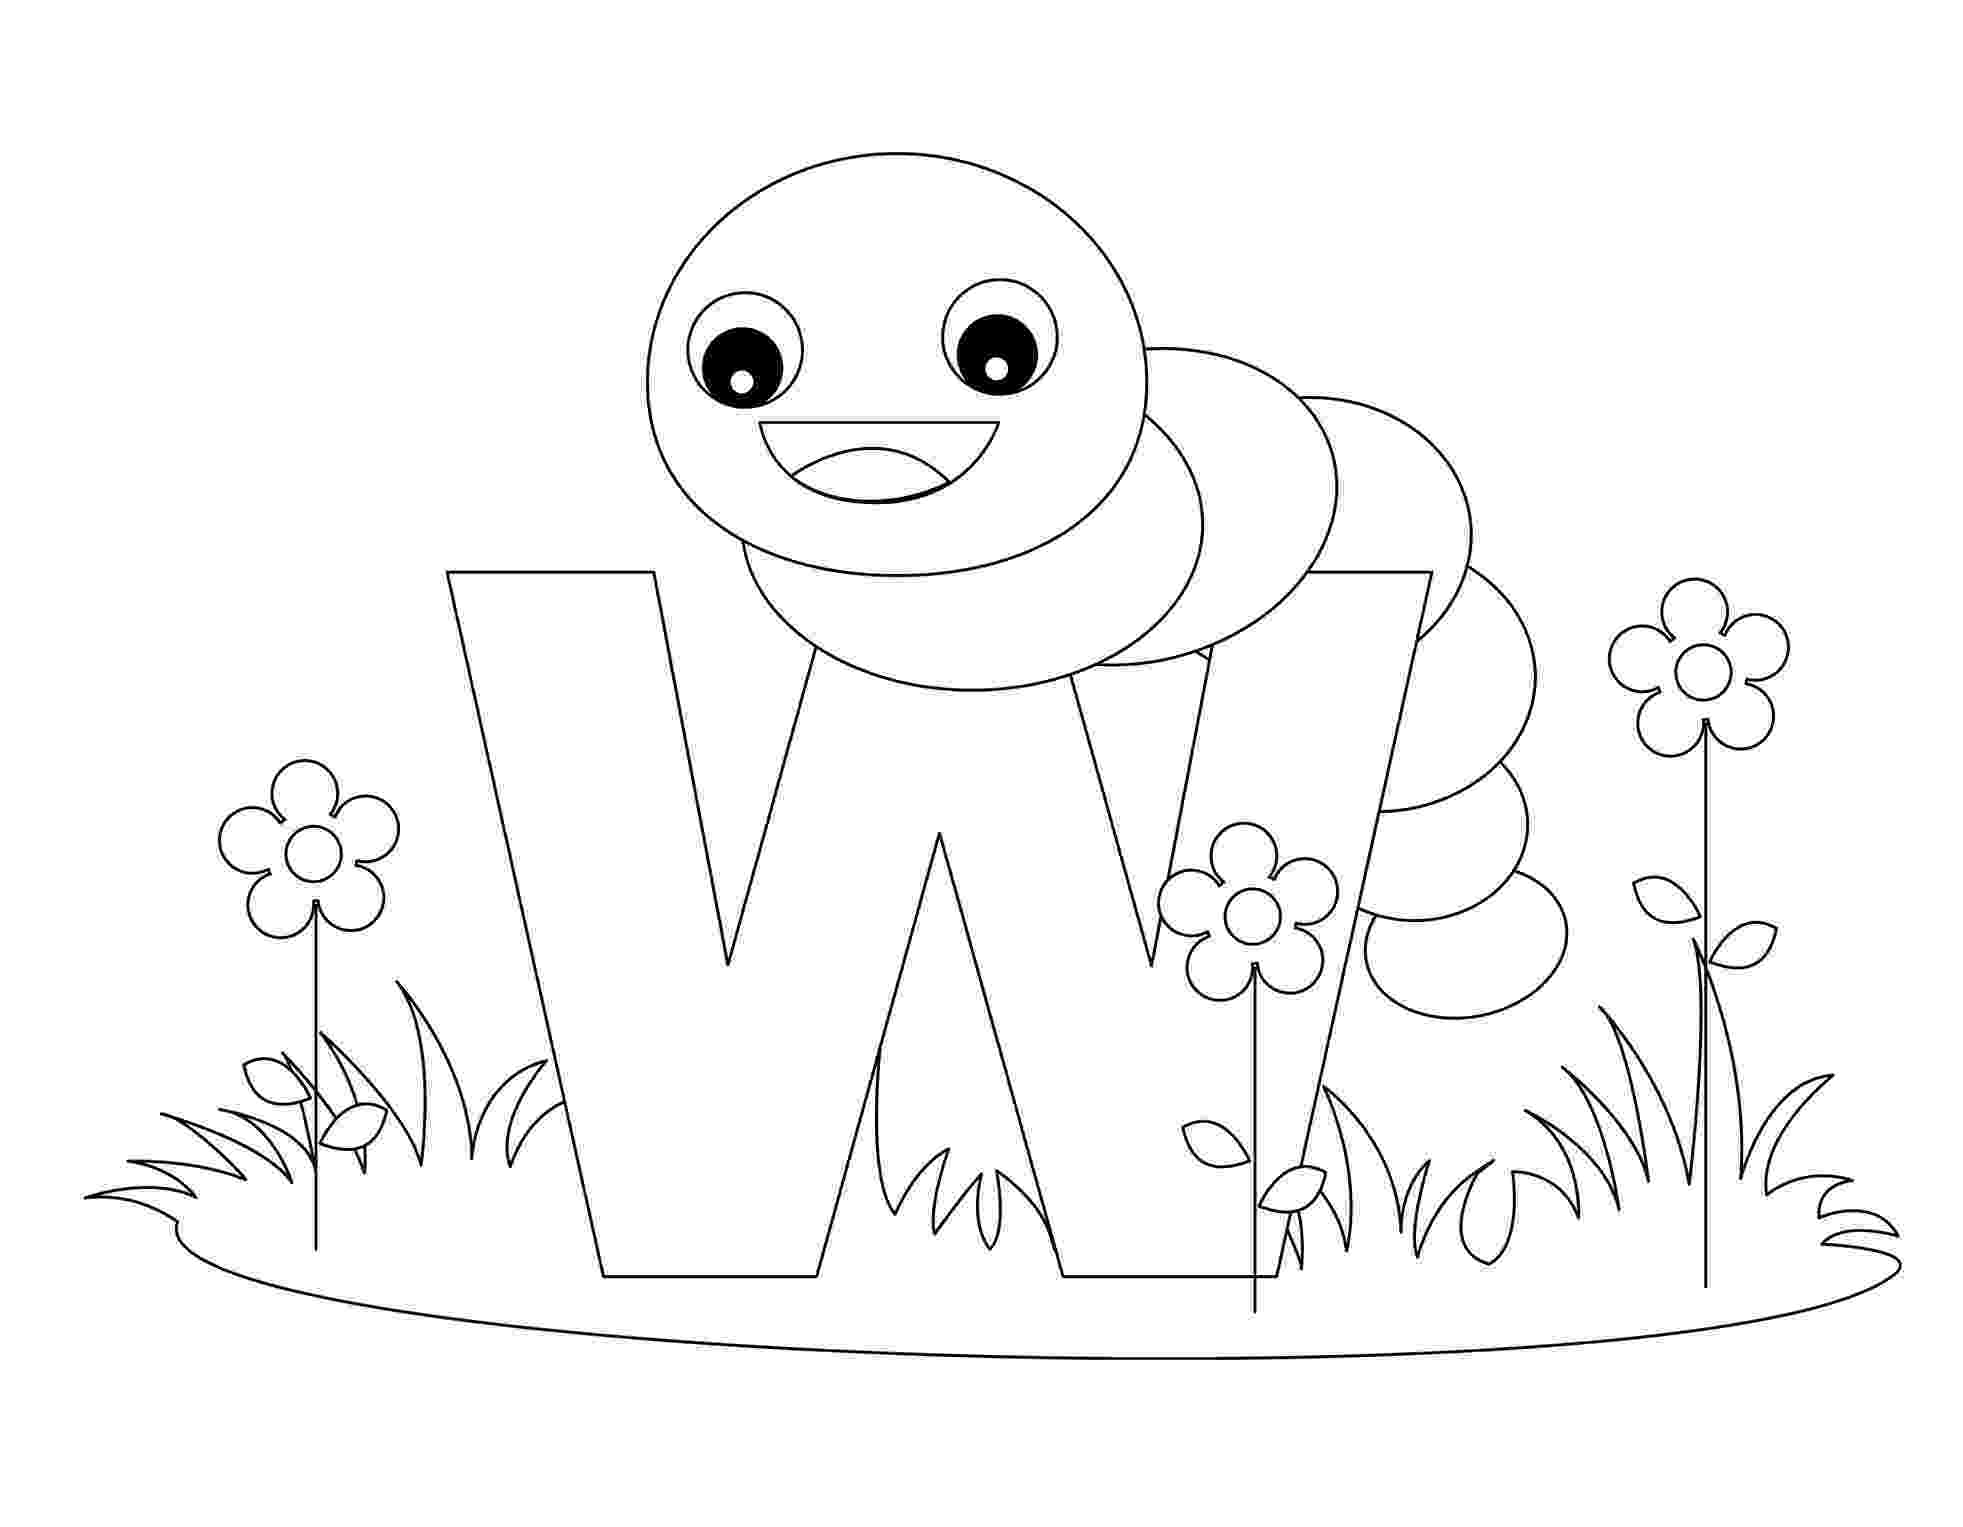 w coloring sheet free printable alphabet coloring pages for kids best w sheet coloring